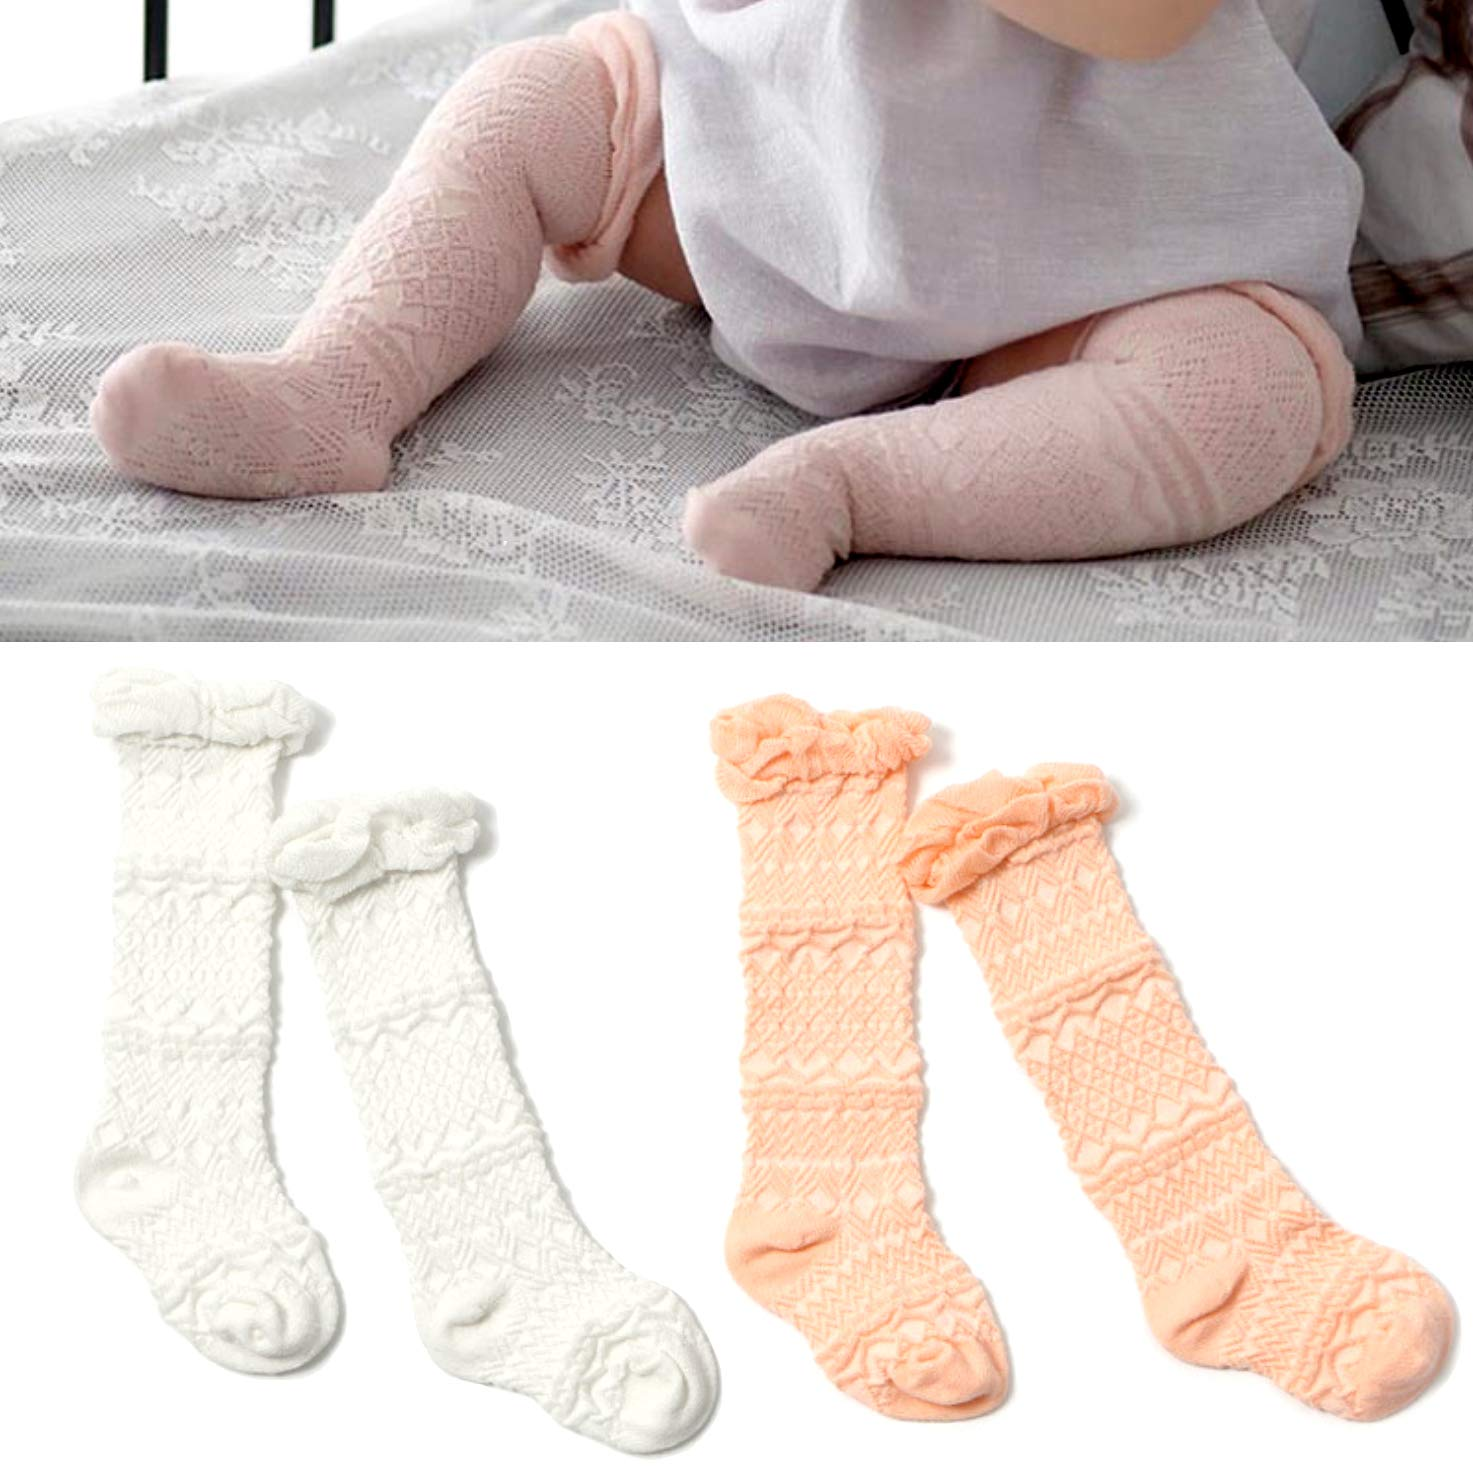 17416714af3c9 Elesa Miracle 2pc Cozy Soft Toddler Baby Leg Warmers Knee High Stocking Baby  Summer Socks Baby